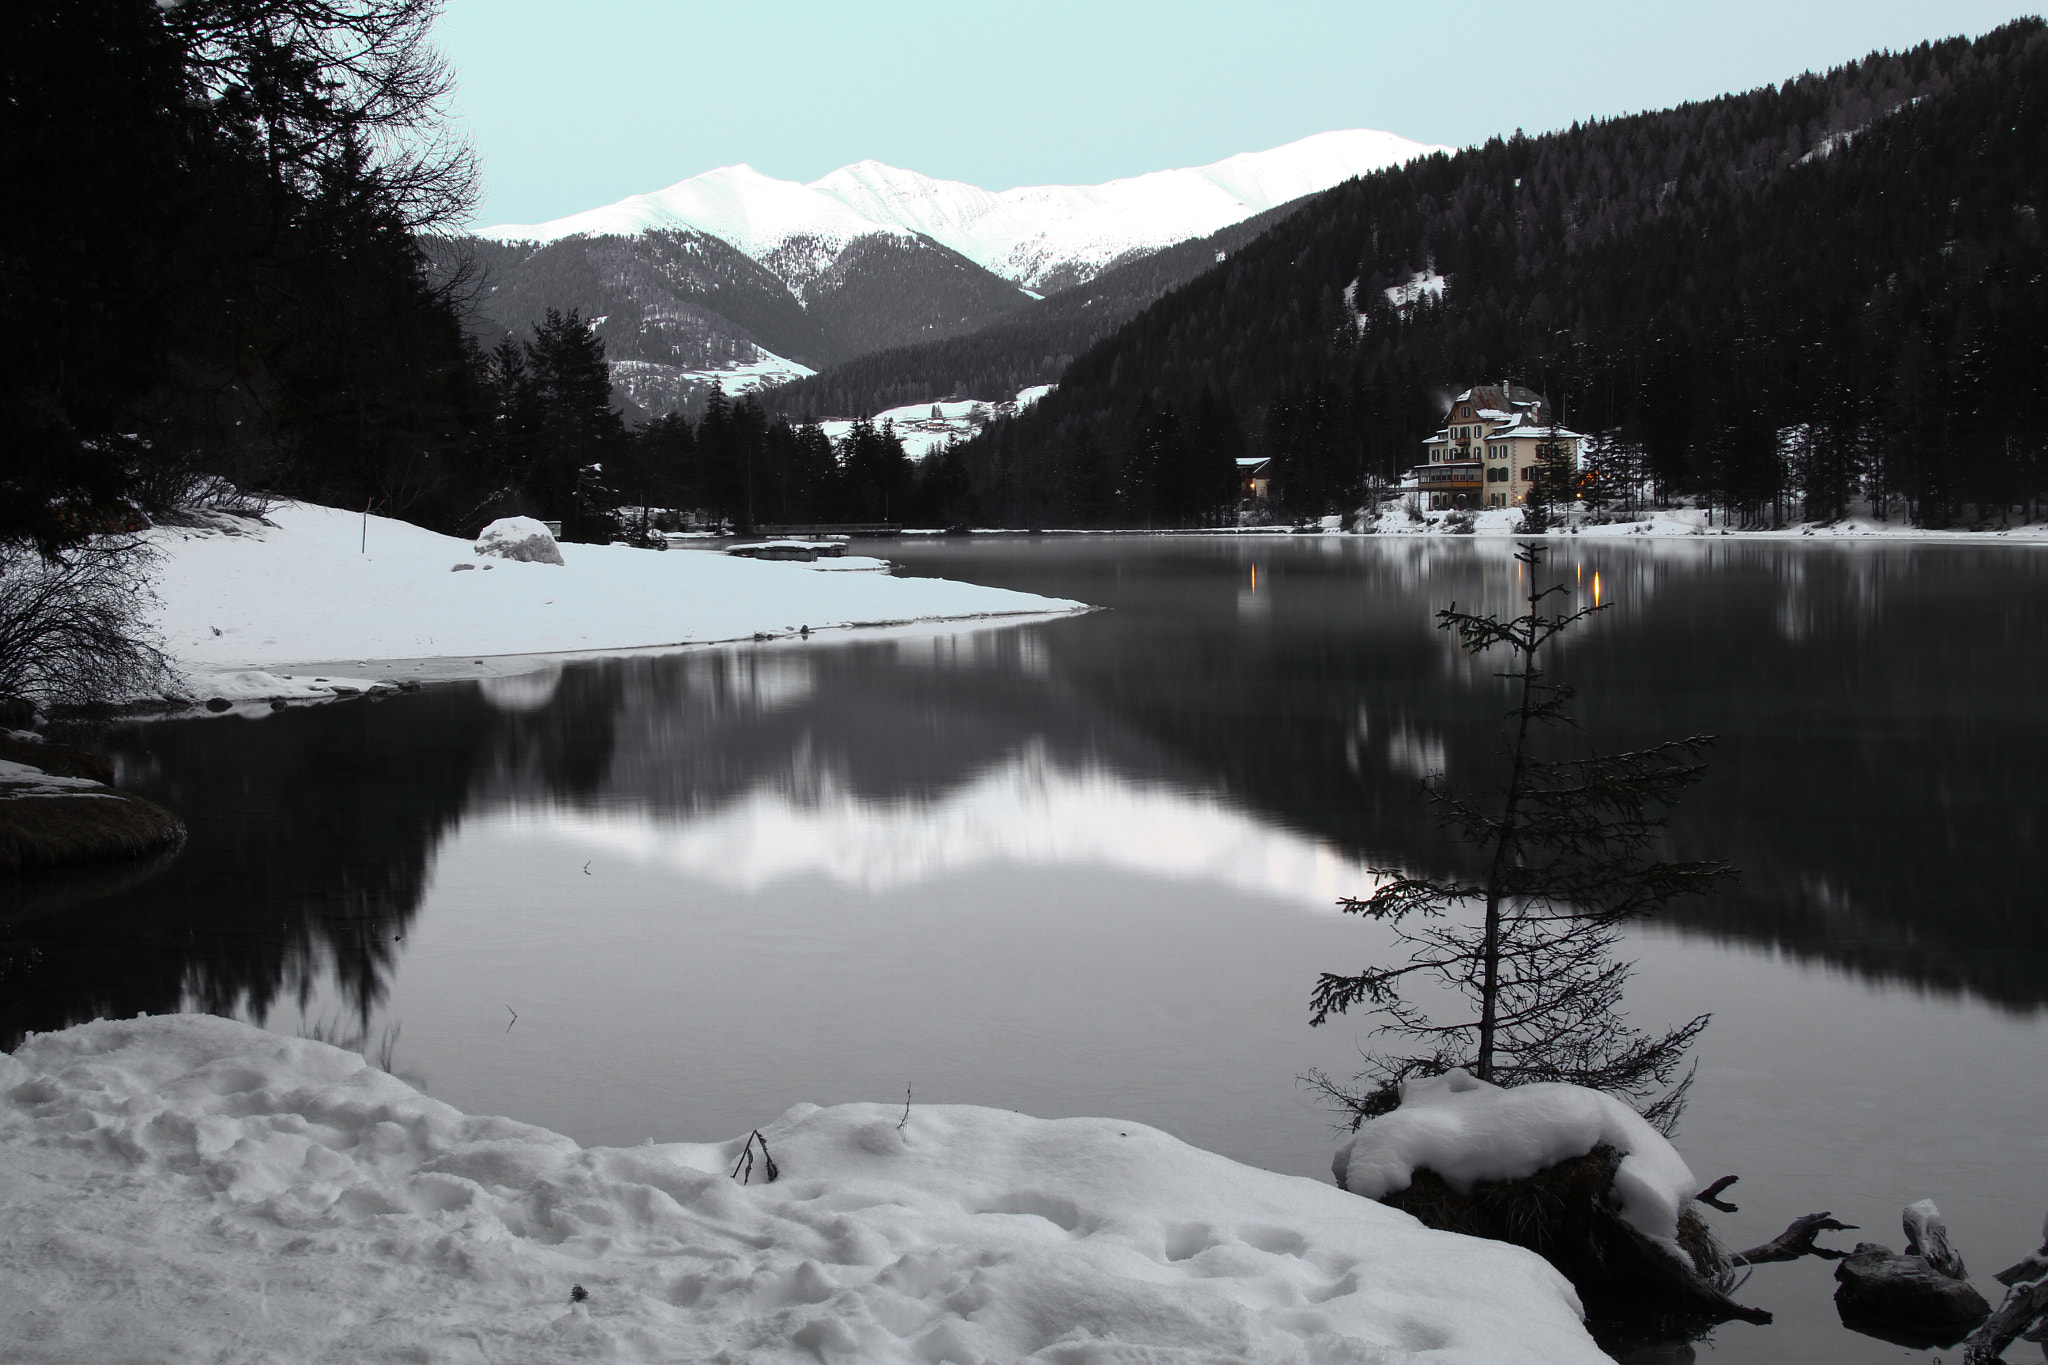 Photograph Toblacher see #6 by Claudio Bozzini on 500px